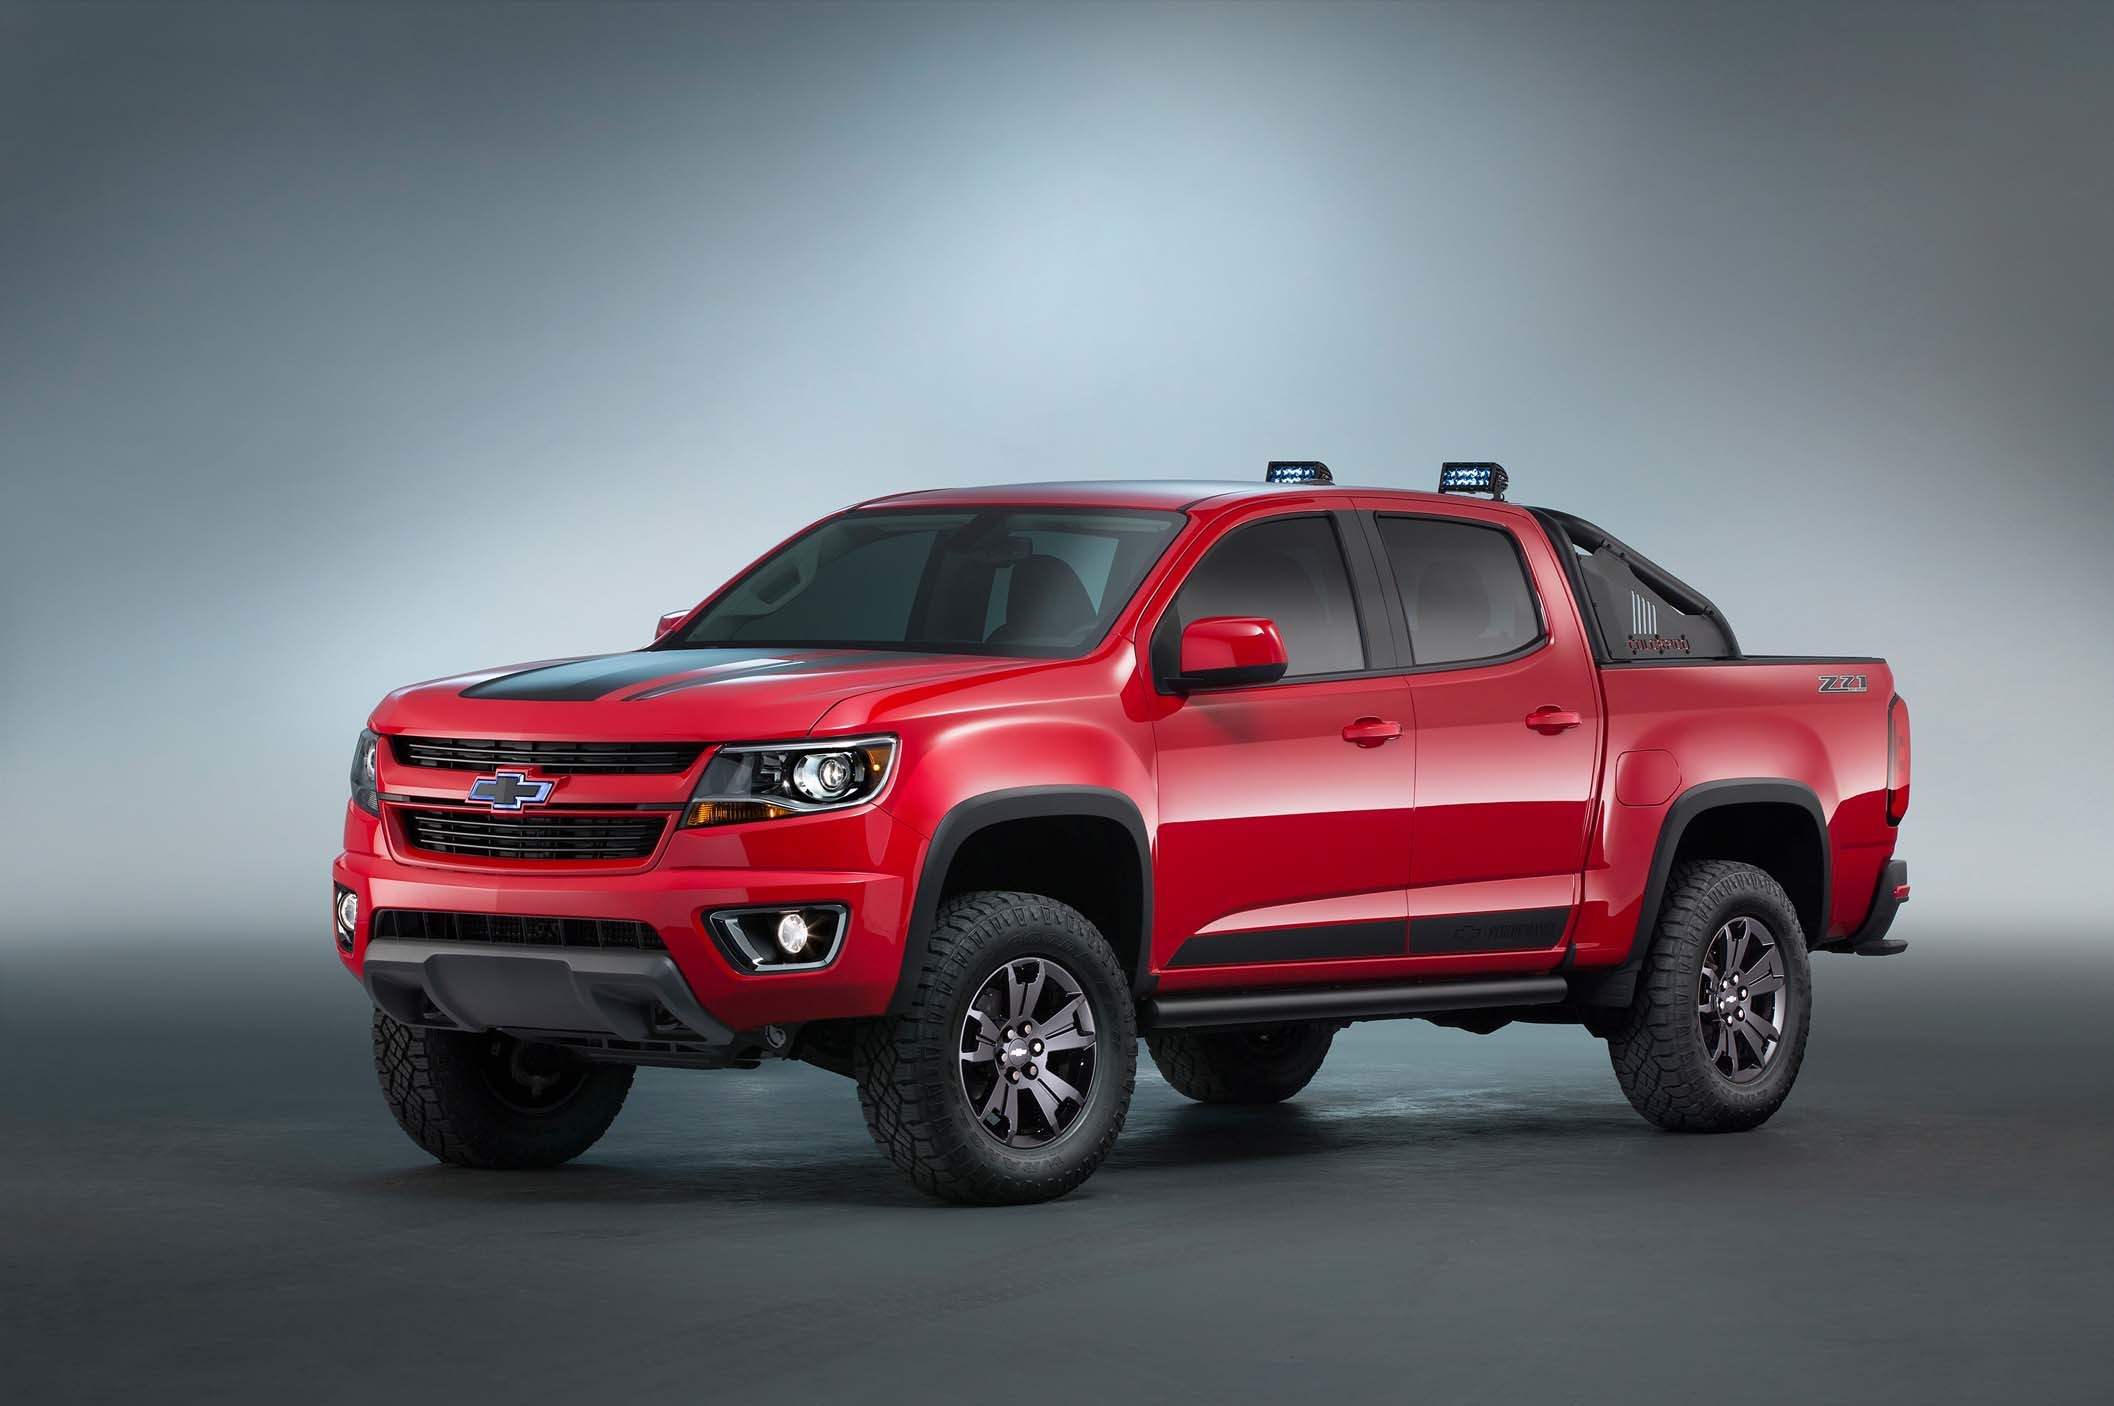 chevrolet colorado z71 trail boss 3 0 concept is a ford f 150 raptor clone at sema autoevolution. Black Bedroom Furniture Sets. Home Design Ideas